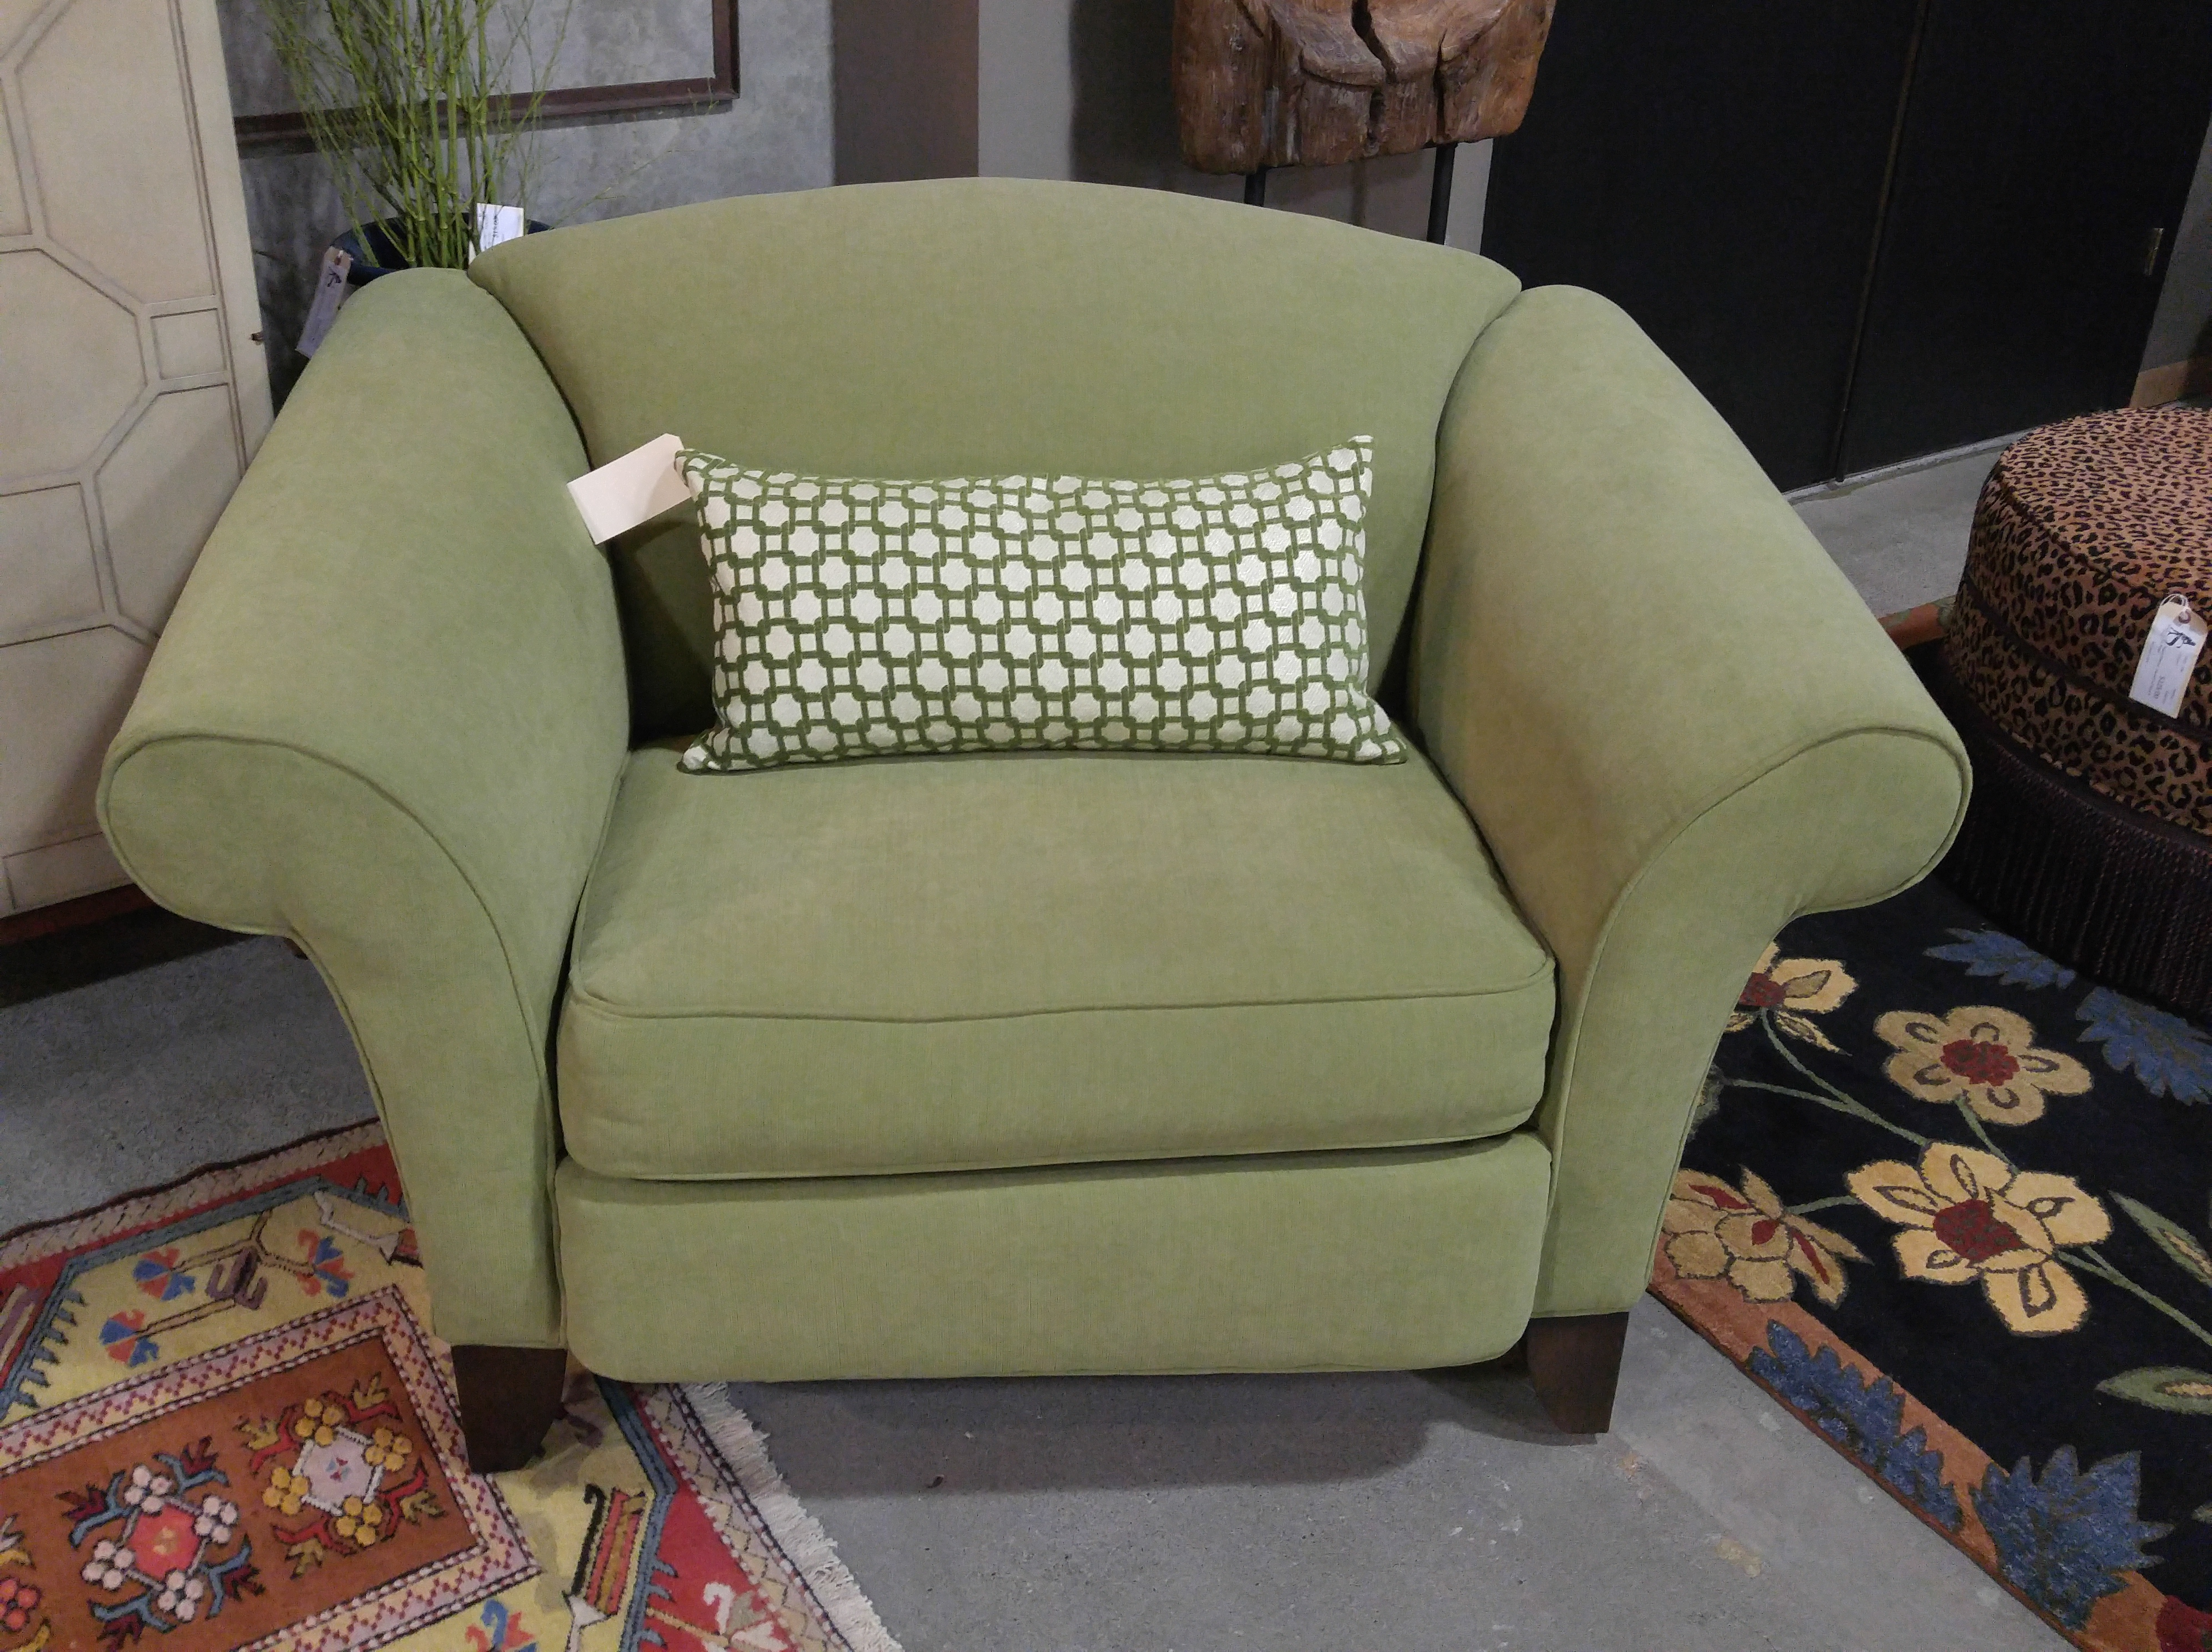 Superieur A Cozy Chair For Two Or A Spacious Reading Nook Option, Snuggle Up In This  Lime Green Brushed Canvas Oversized Chair With Rolled Arms And  Espresso Stained ...